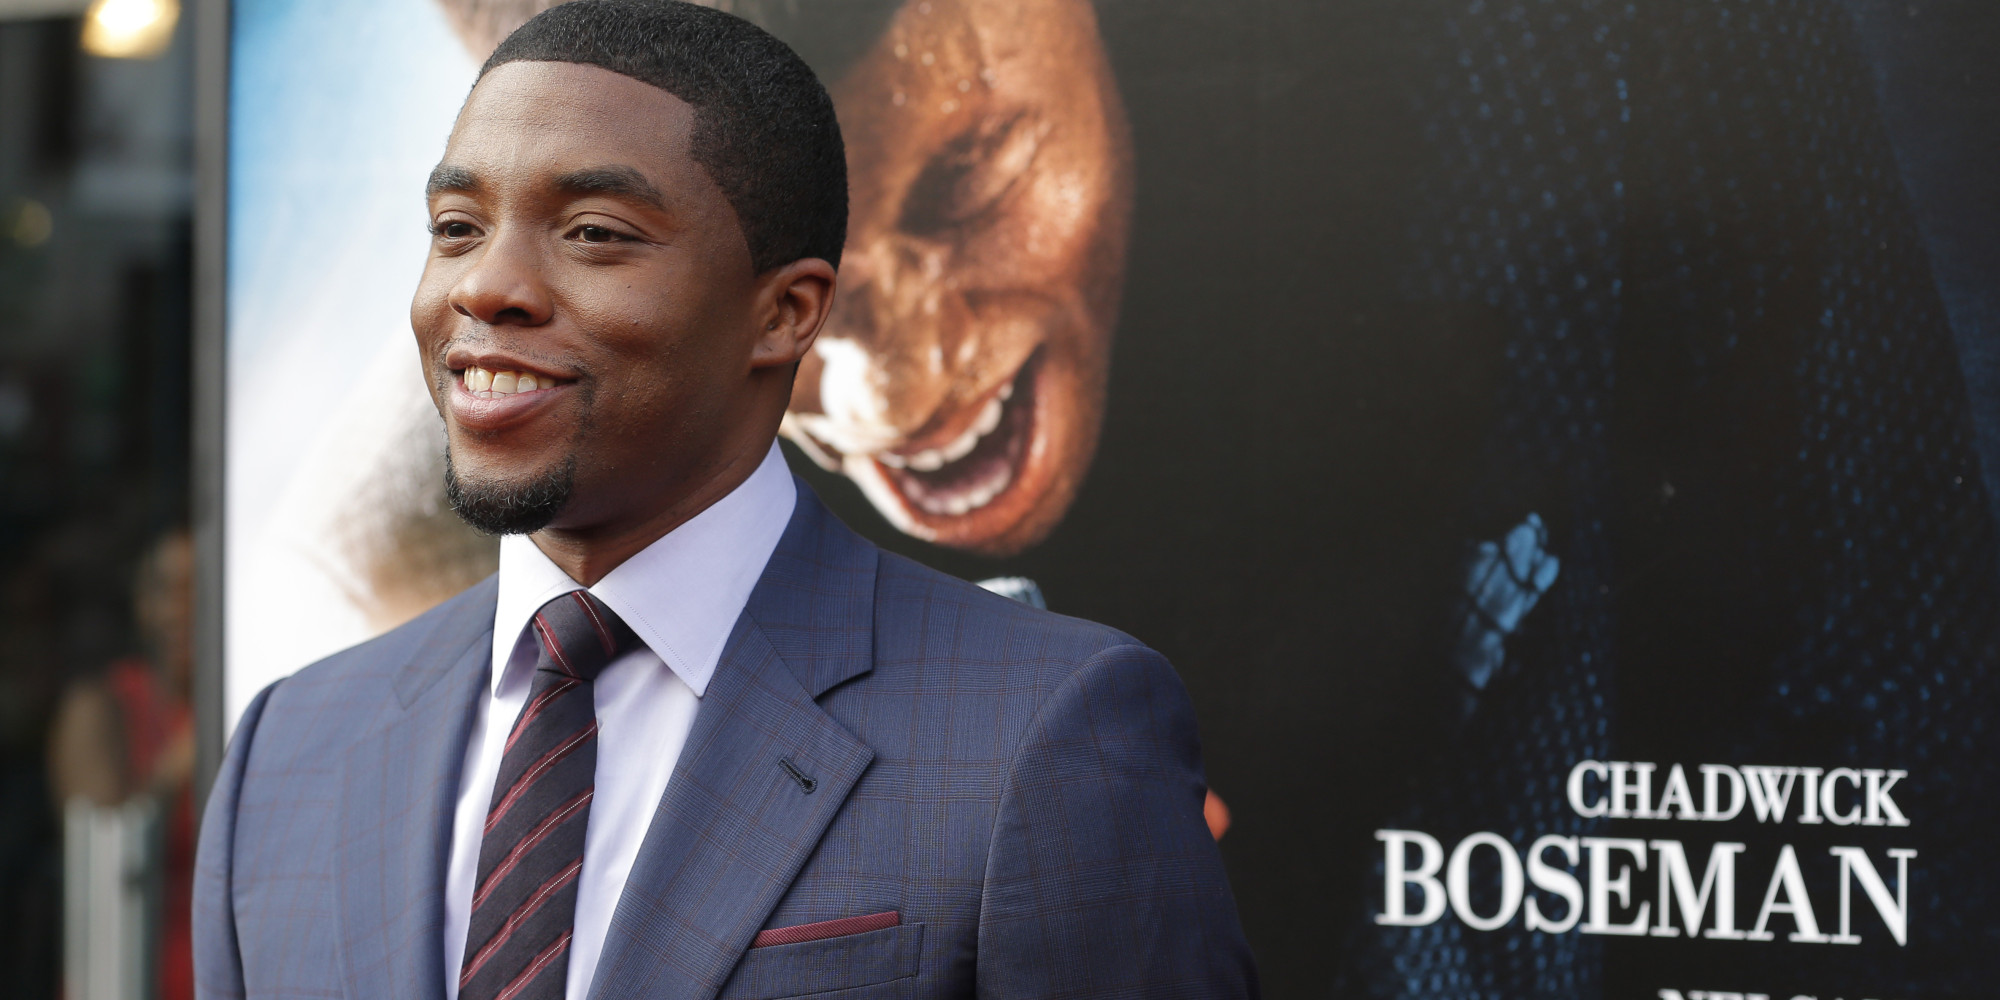 Chadwick Boseman Chadwick Boseman on James